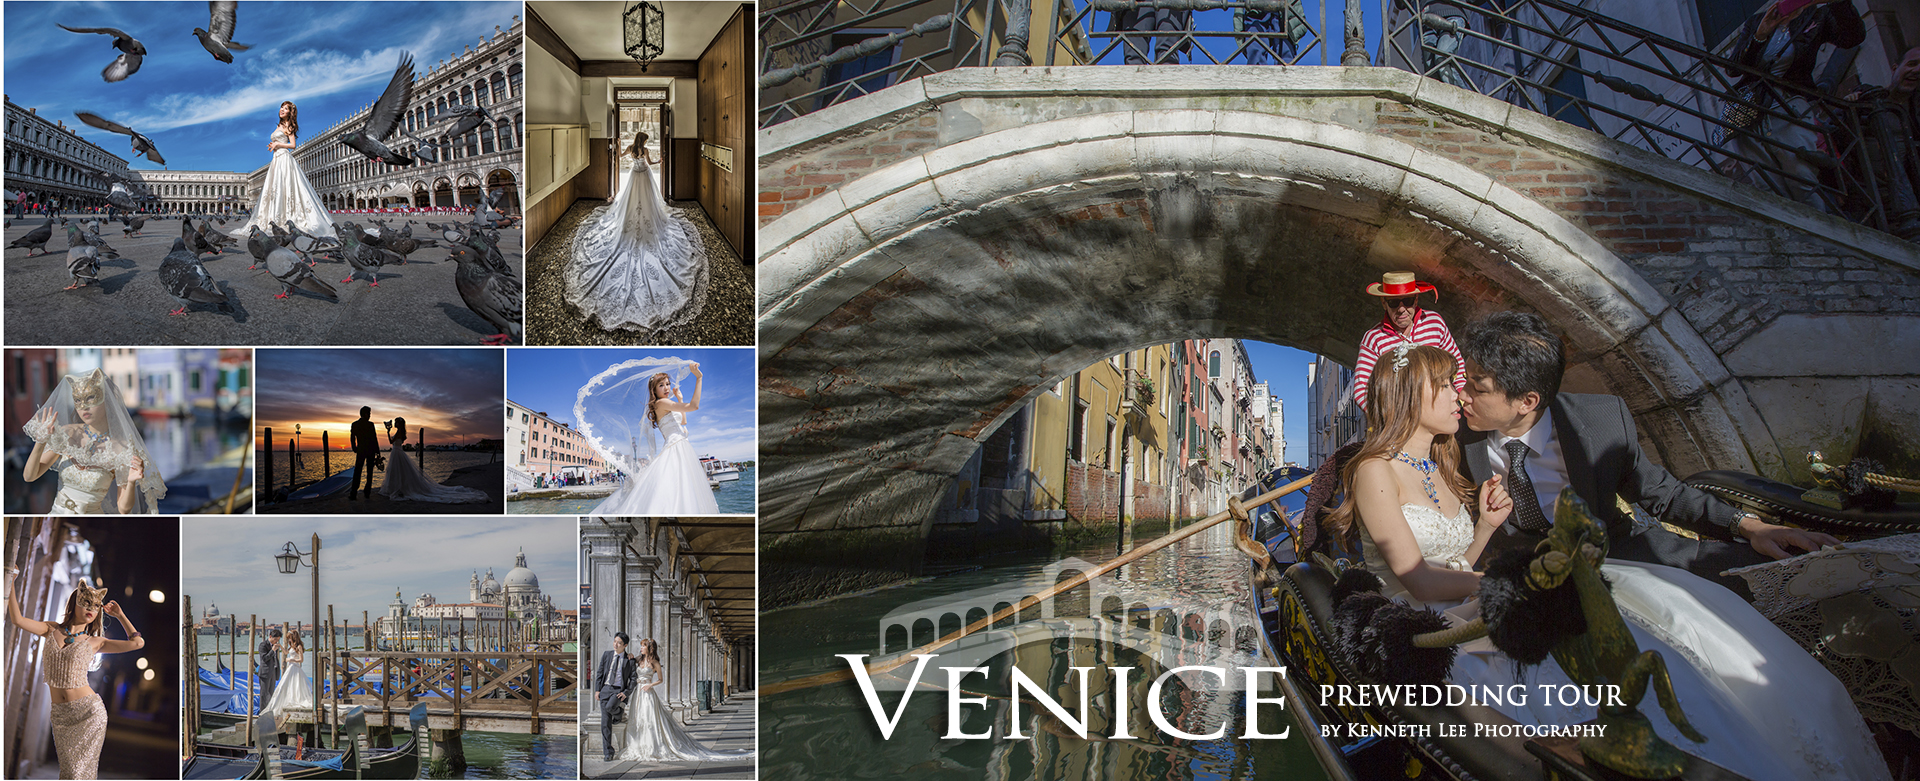 venice_prewedding_photo_tour